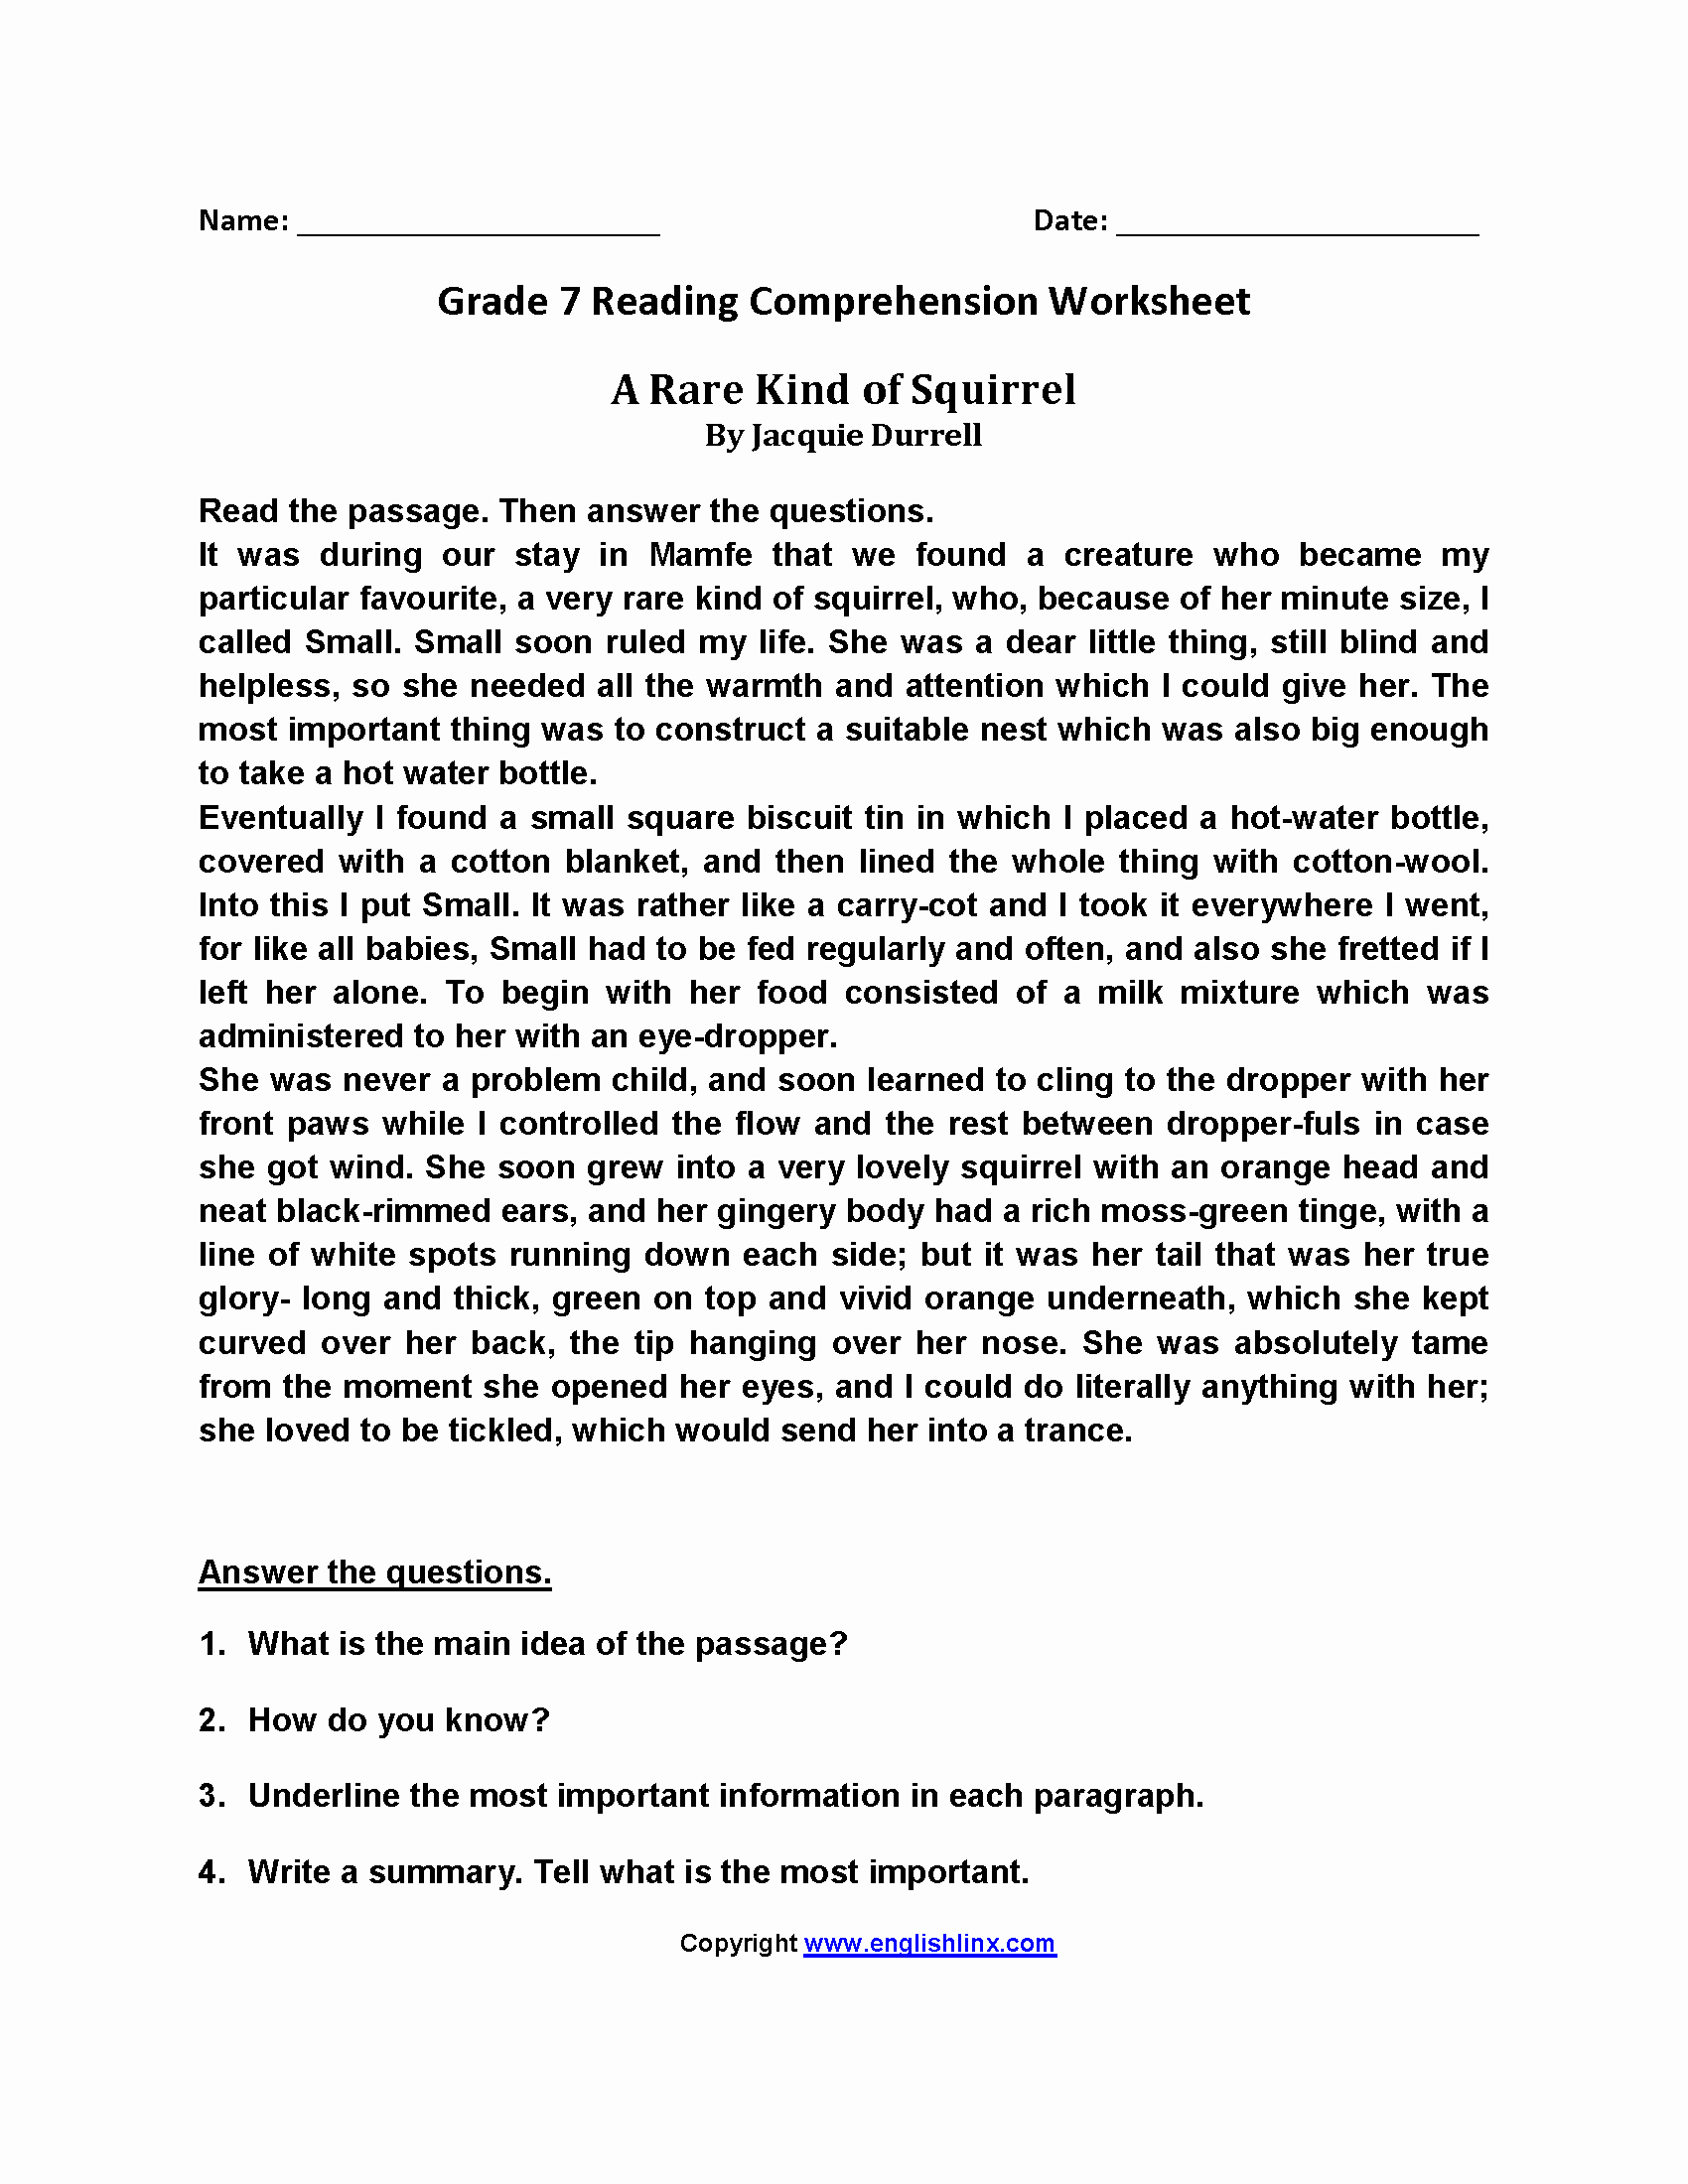 Free 7th Grade Reading Worksheets Lovely 7th Grader Grade 7 Reading Prehension Worksheets Pdf